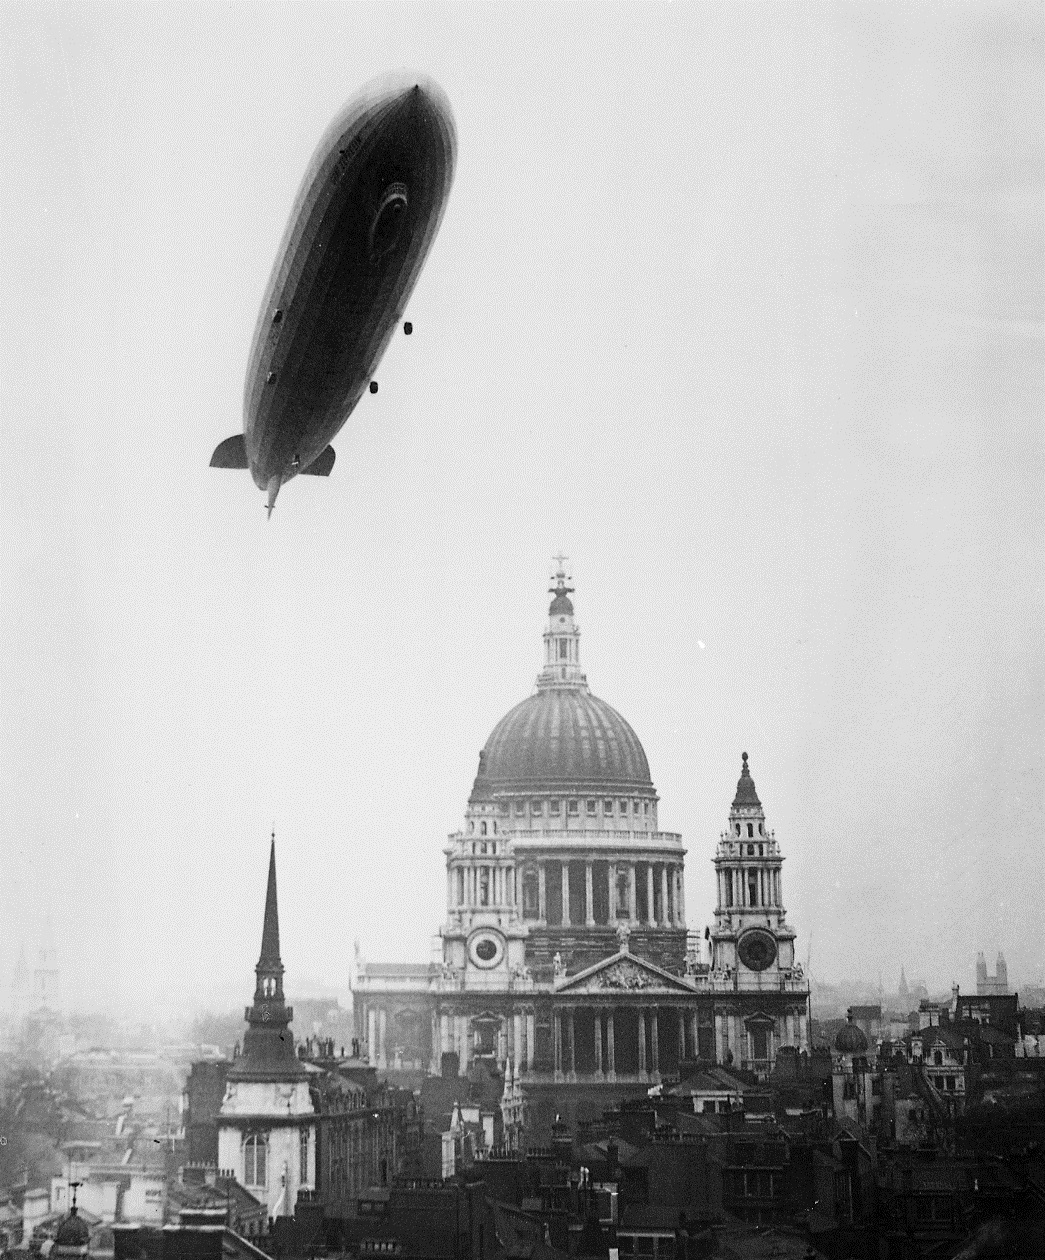 Graf Zeppelin over St Paul's Cathedral, London, 1930, The National Archives, AIR 11/237